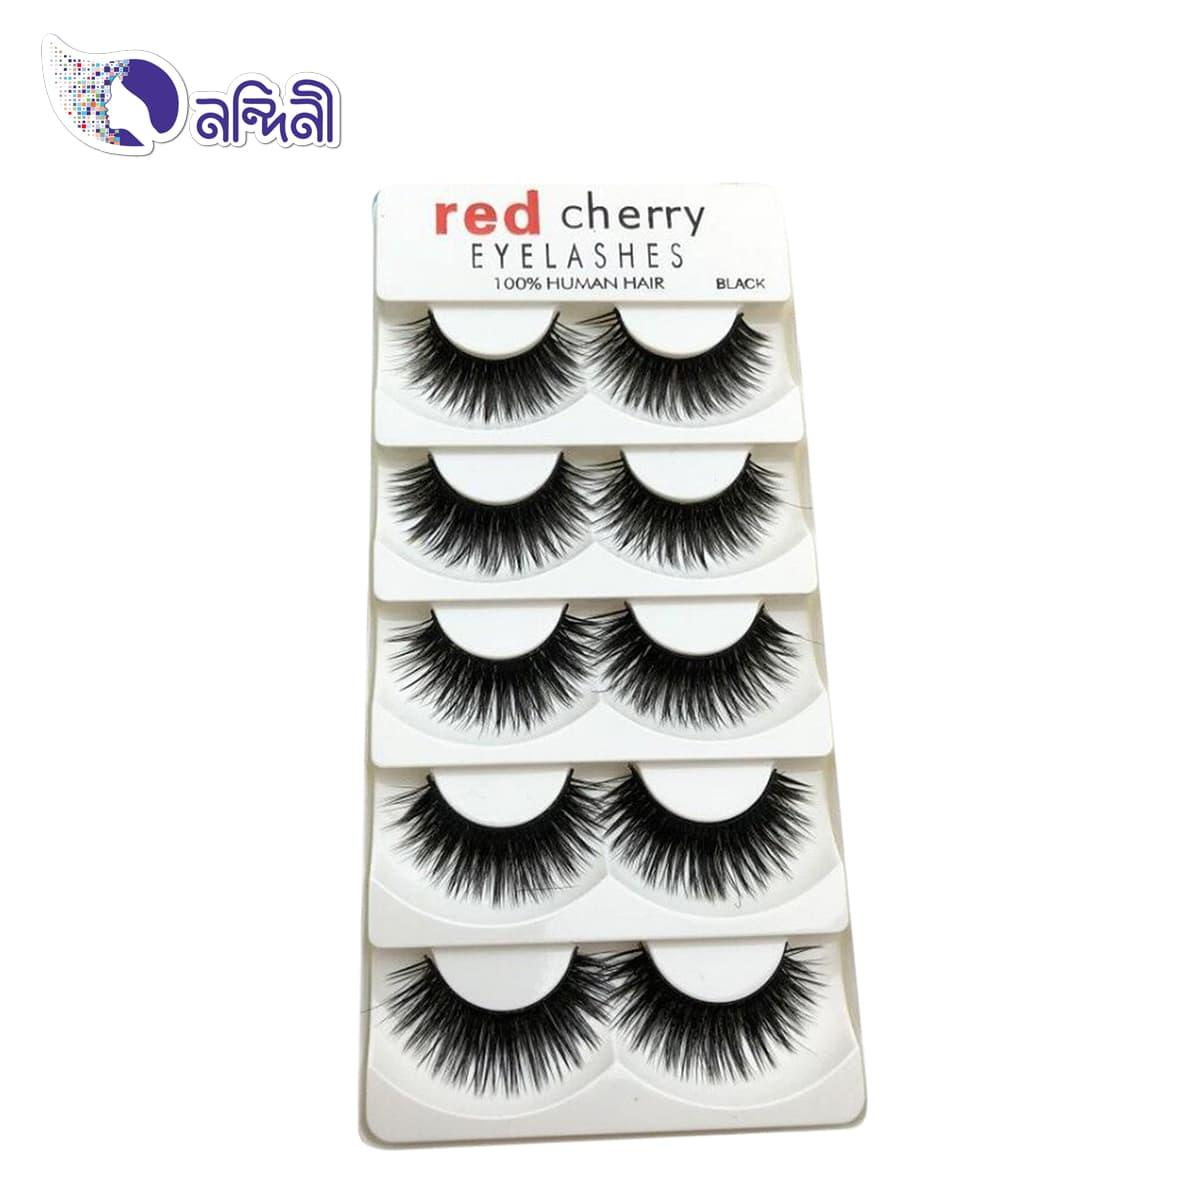 d1f5e218af3 RED CHERRY False Eyelashes Natural Long Eye Lashes Extension Makeup  Professional Faux Eyelash